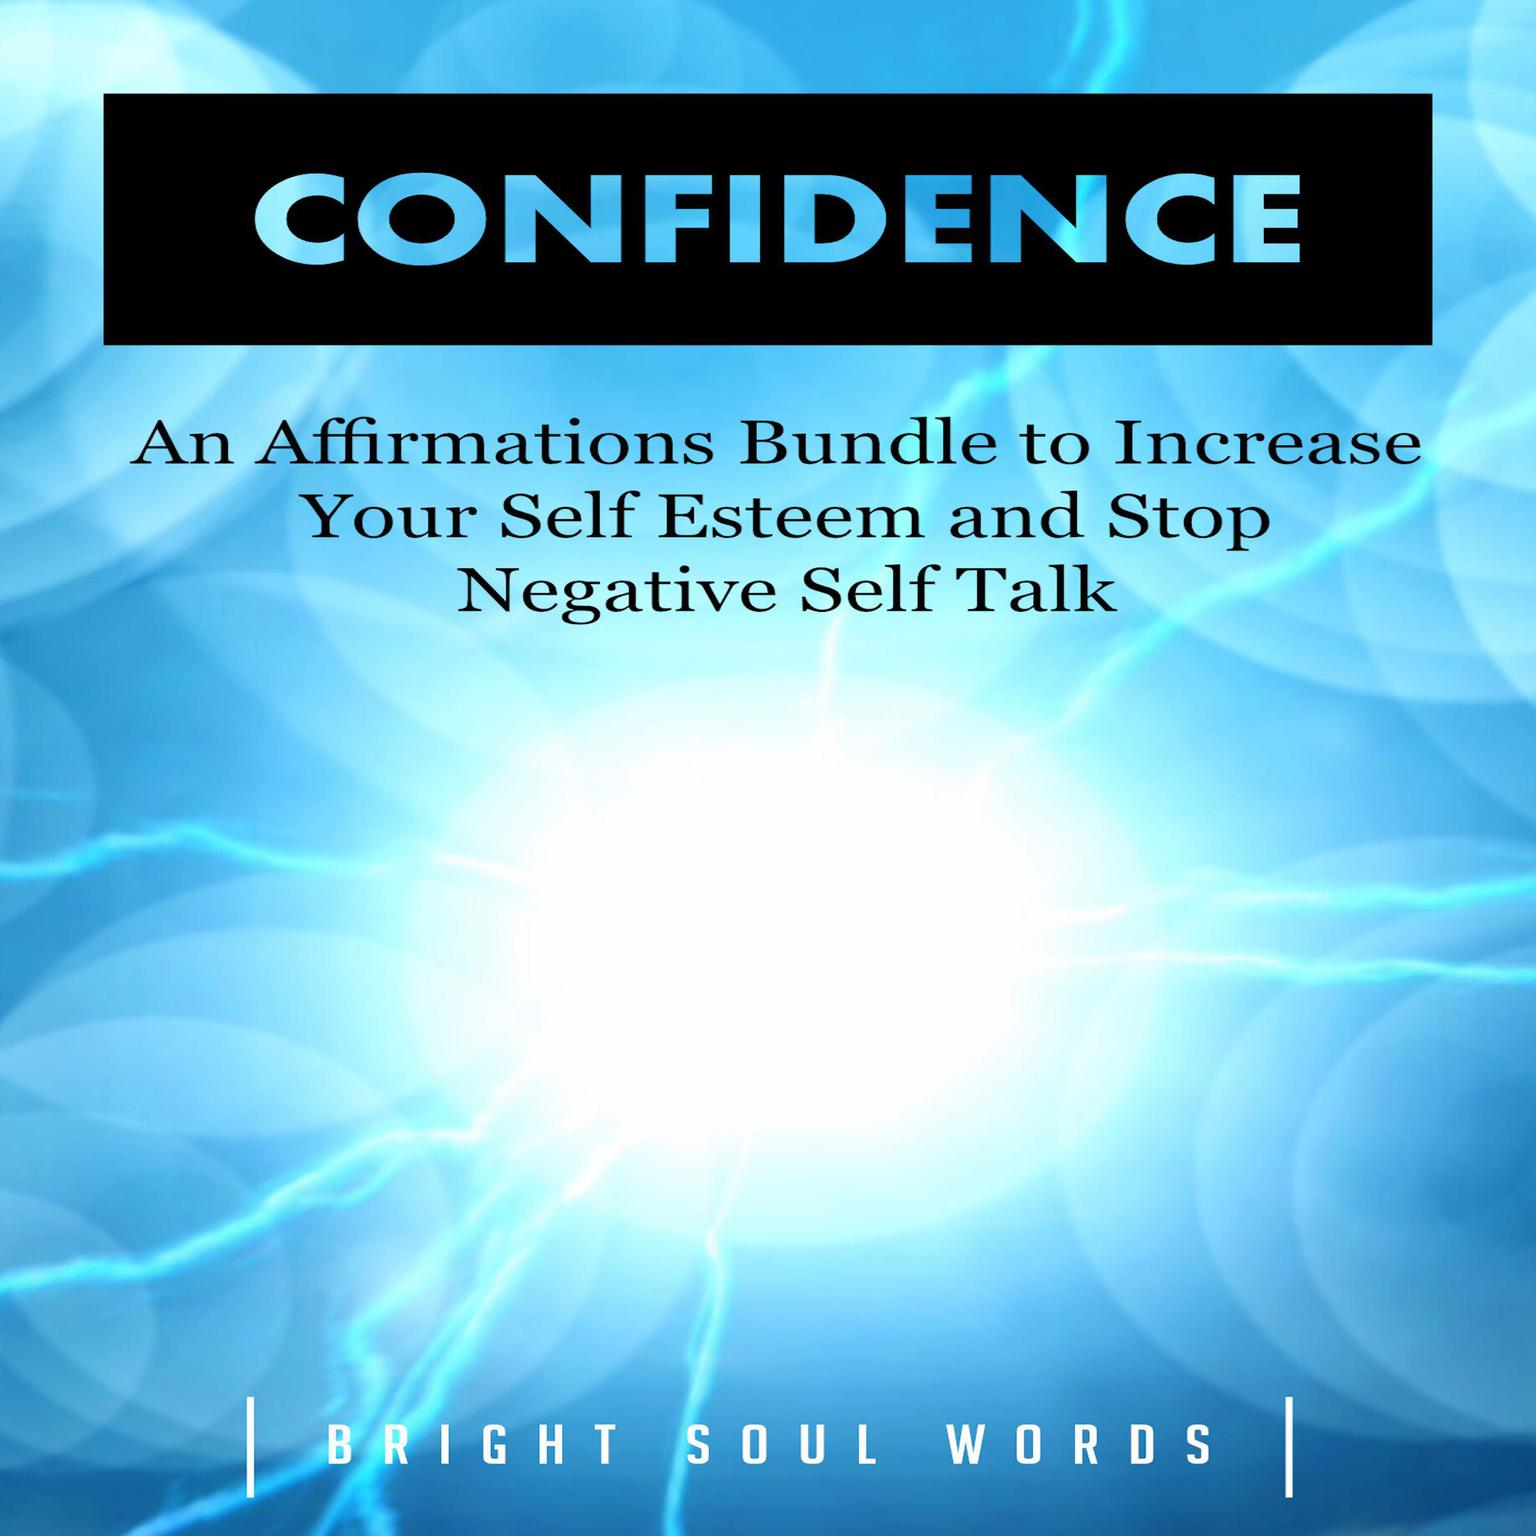 Confidence: An Affirmations Bundle to Increase Your Self Esteem and Stop Negative Self Talk Audiobook, by Bright Soul Words